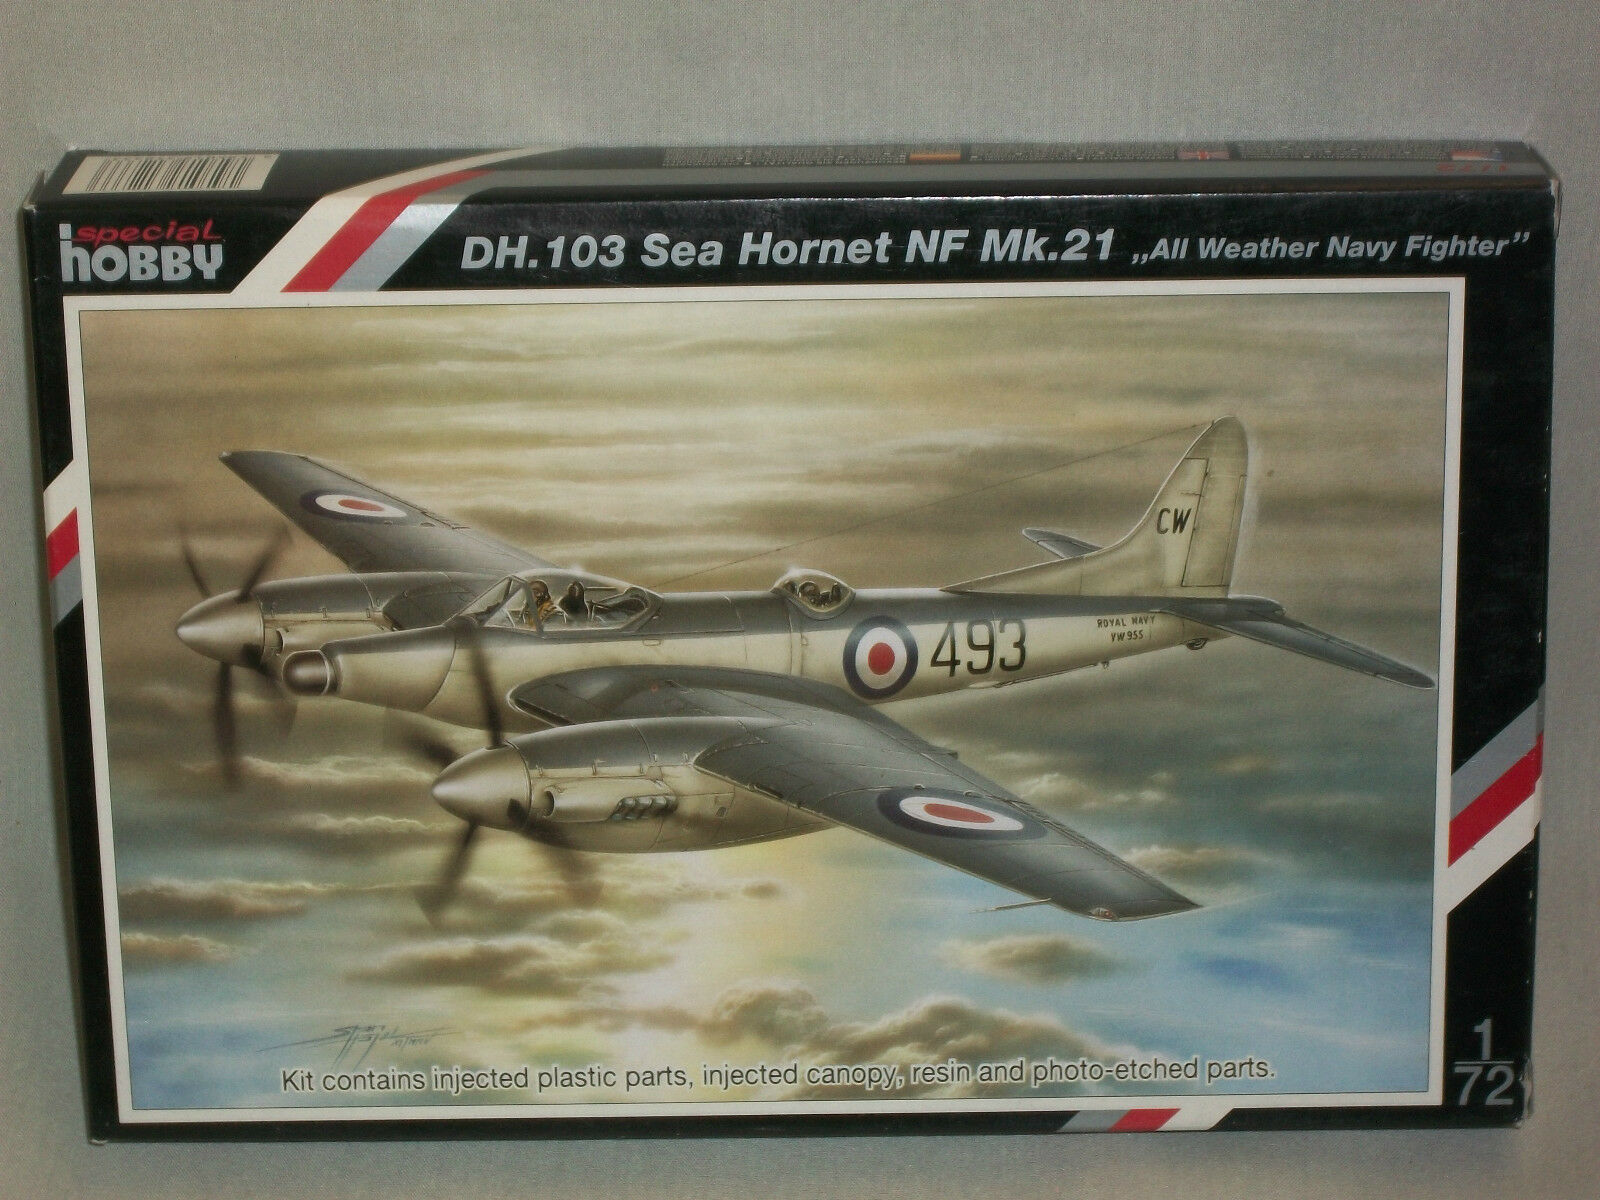 Special Hobby 1 72 Scale D.H. 103 Sea Hornet NF Mk.21